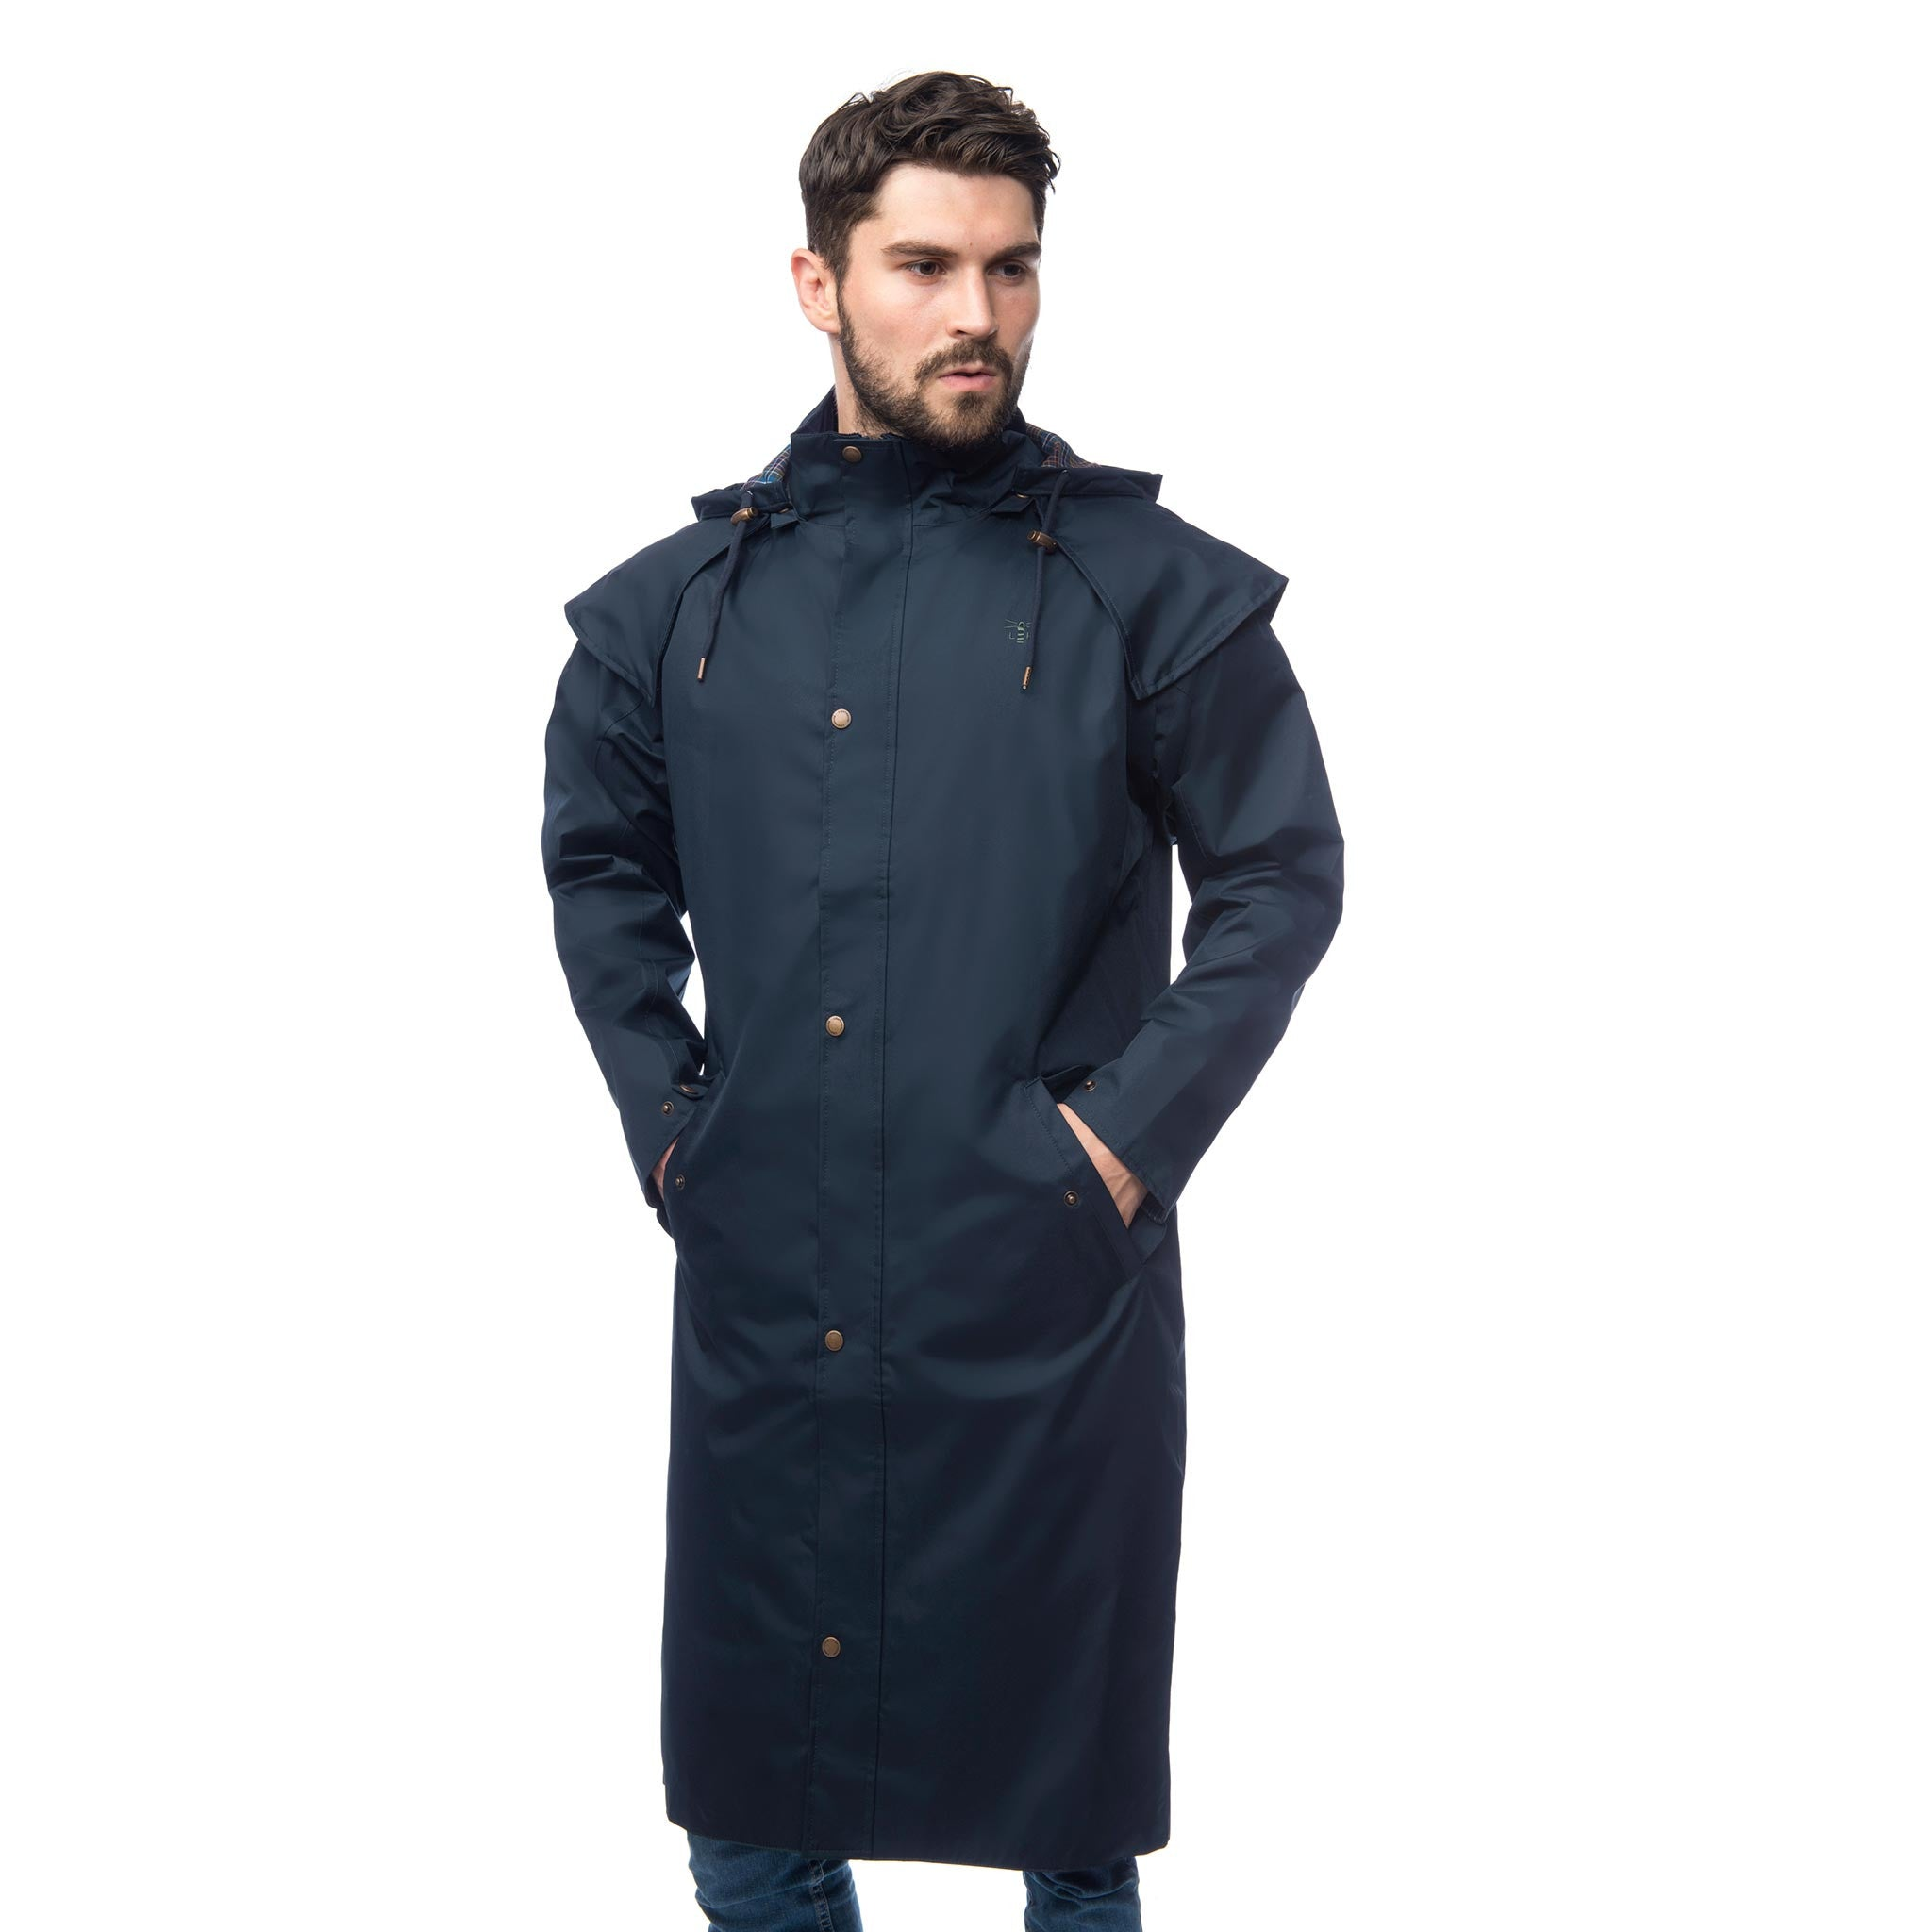 Lighthouse Mens Stockman Full Length Waterproof Rain Coat in Navy.  Zipped and buttoned. Hood down. Hands in pockets.